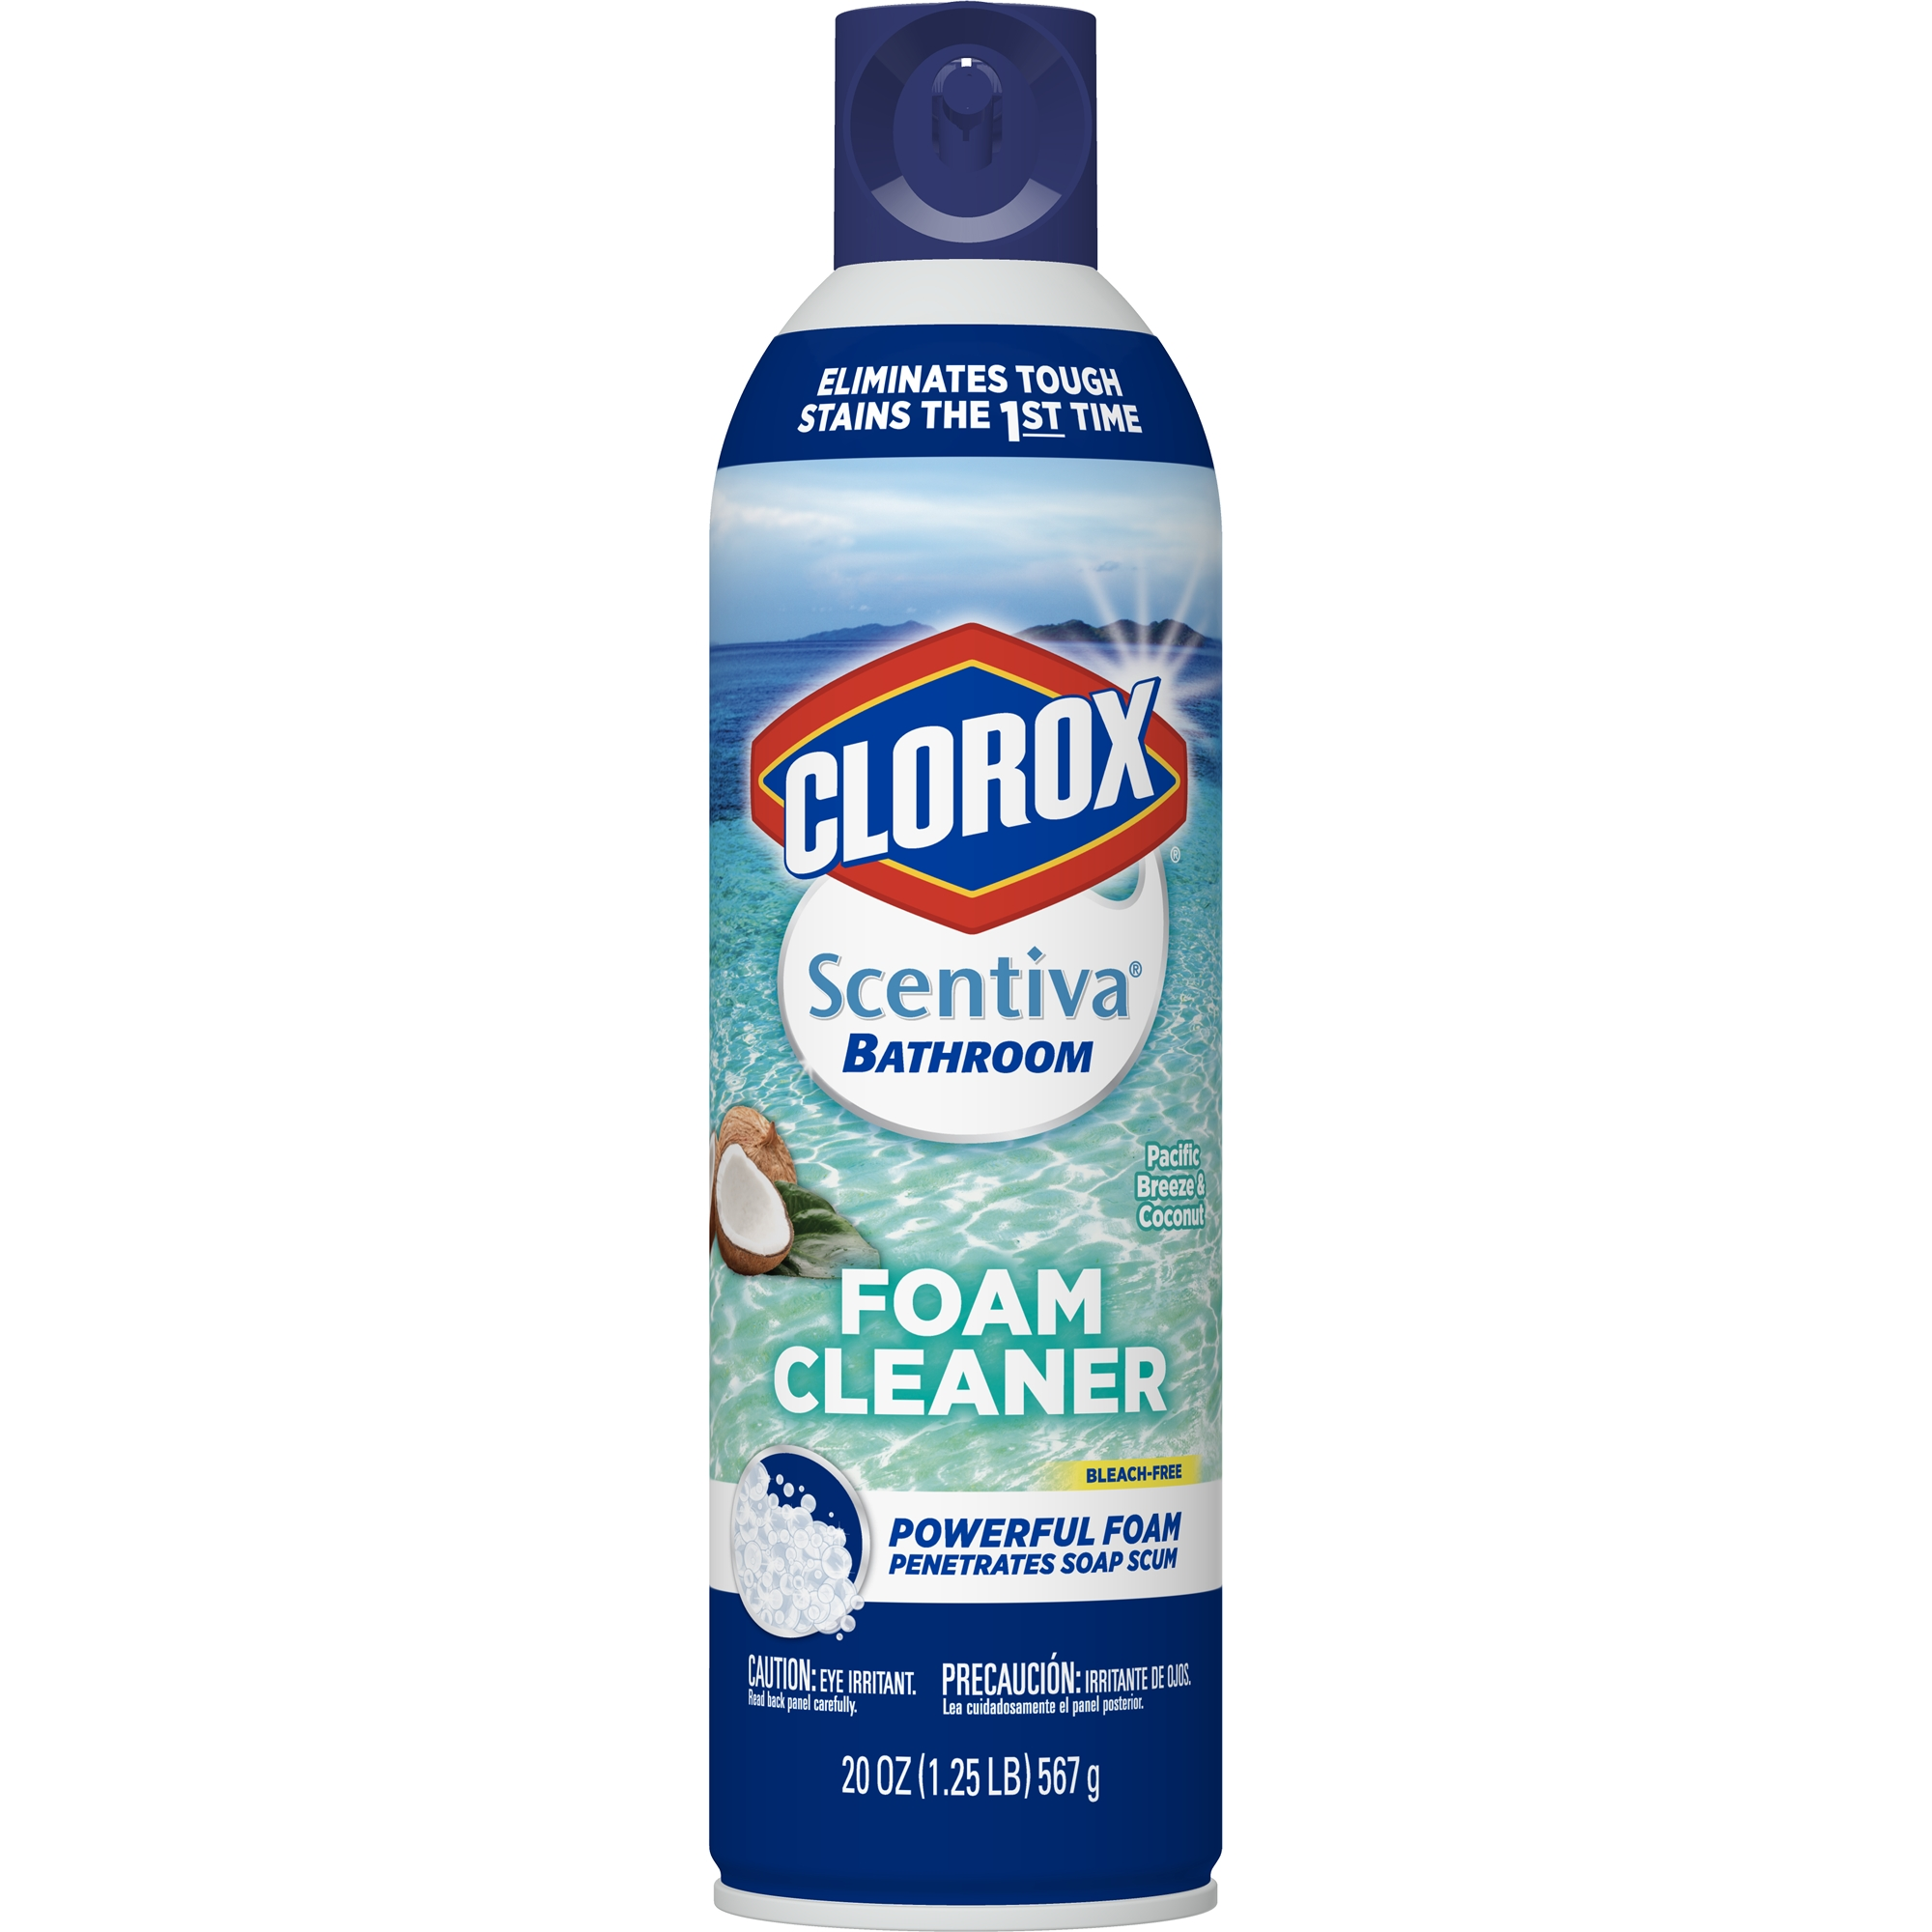 Clorox Scentiva Bathroom Foam Cleaner - Foaming Aerosol Multi-Surface Cleaner -Pacific Breeze & Coconut - 20 oz